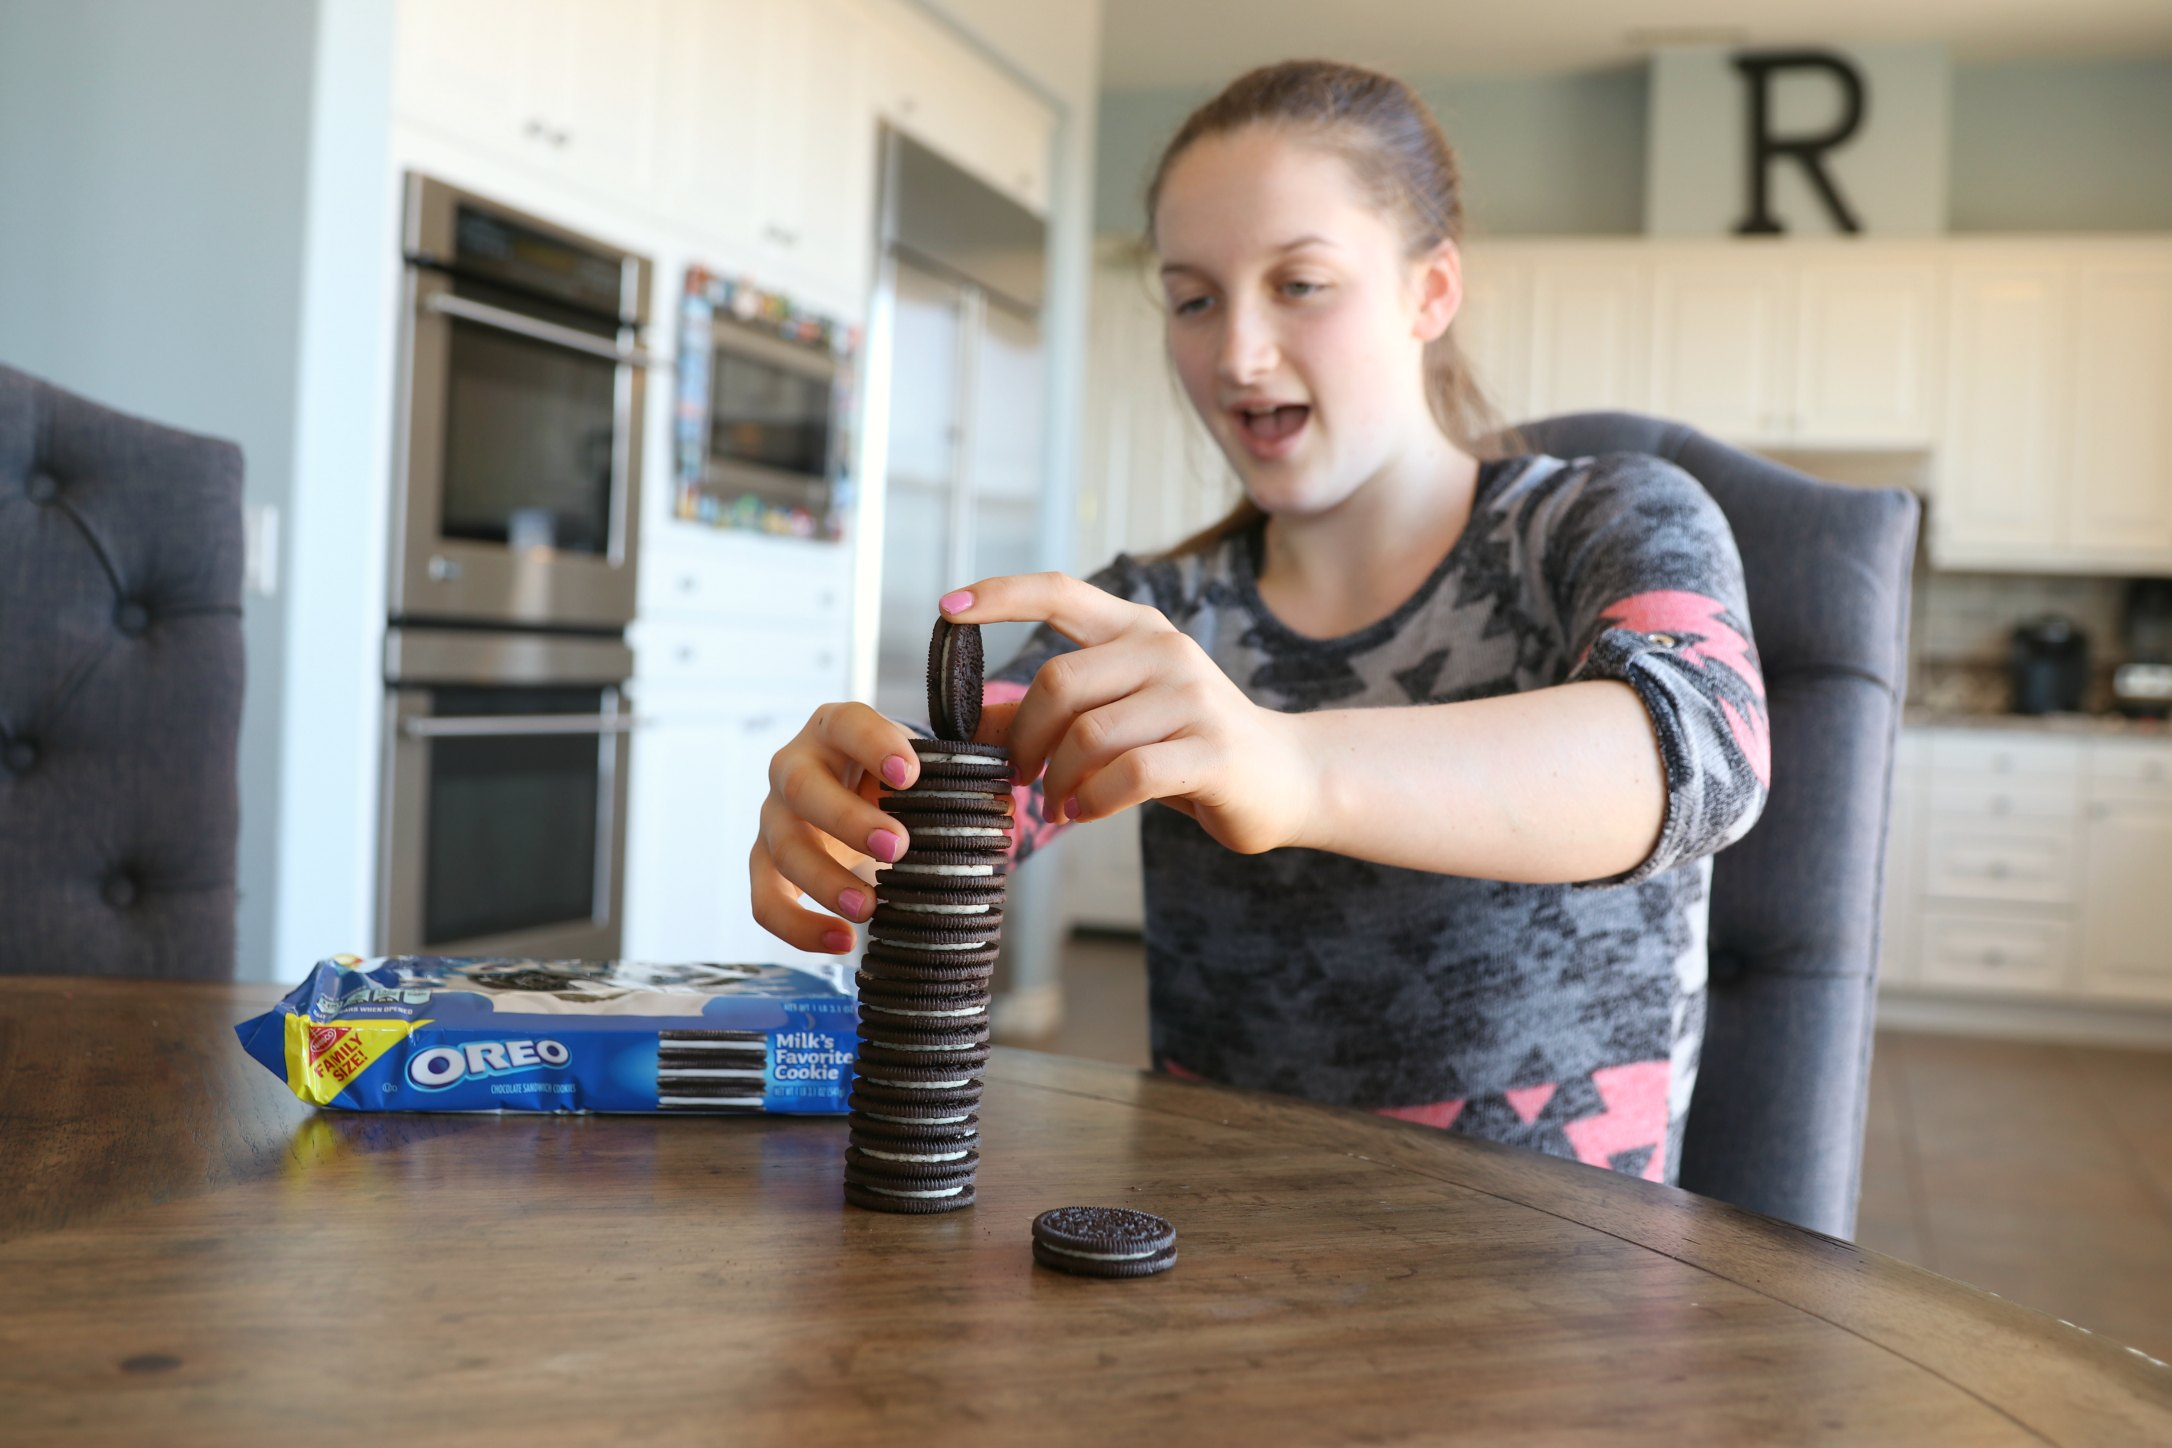 Epic Fails From Our OREO Trick Shot Video | It's a Lovely Life!